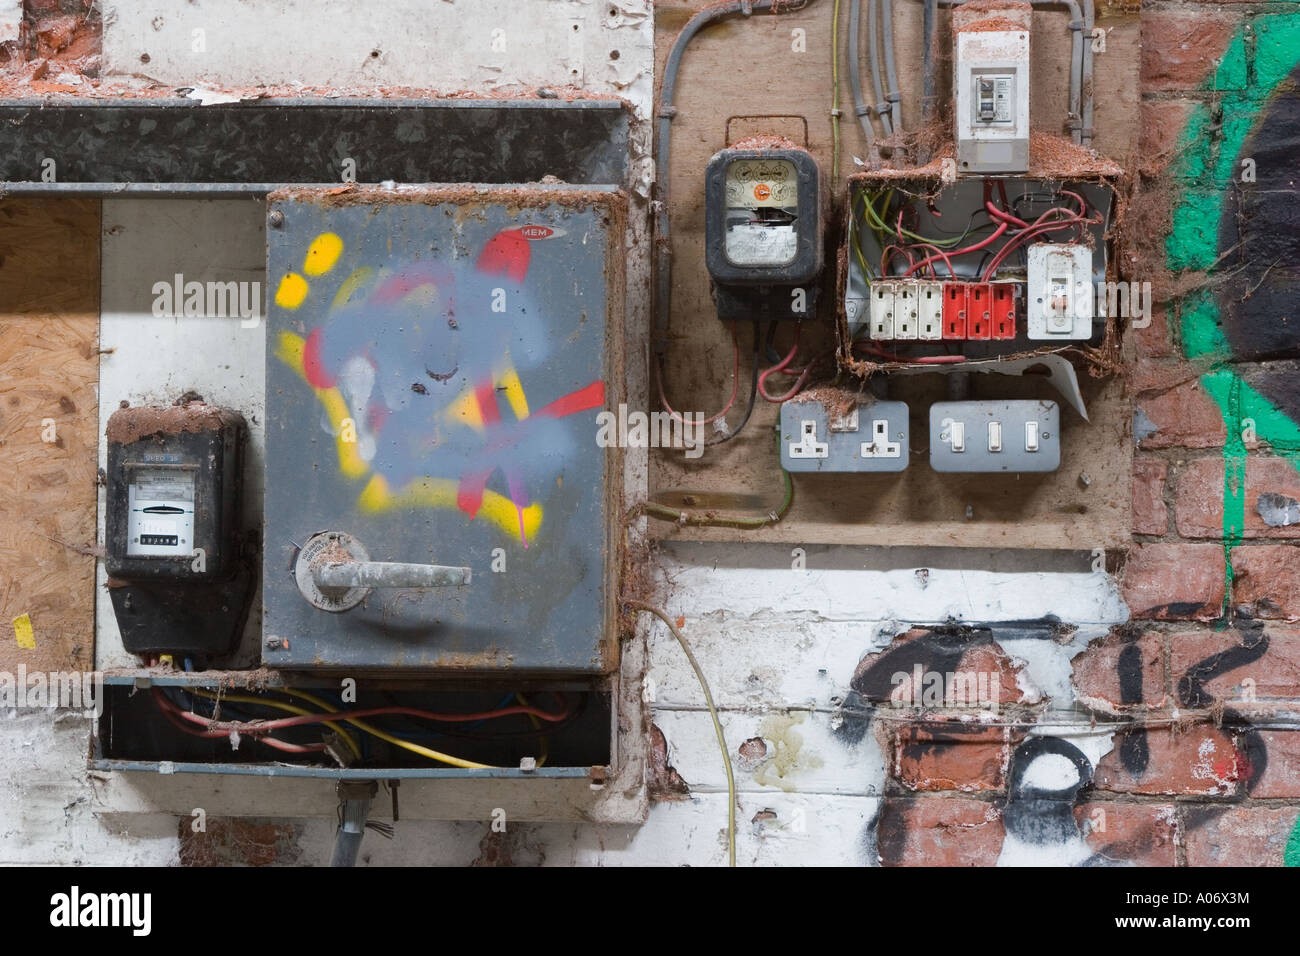 electrical fuse boards - photo #27